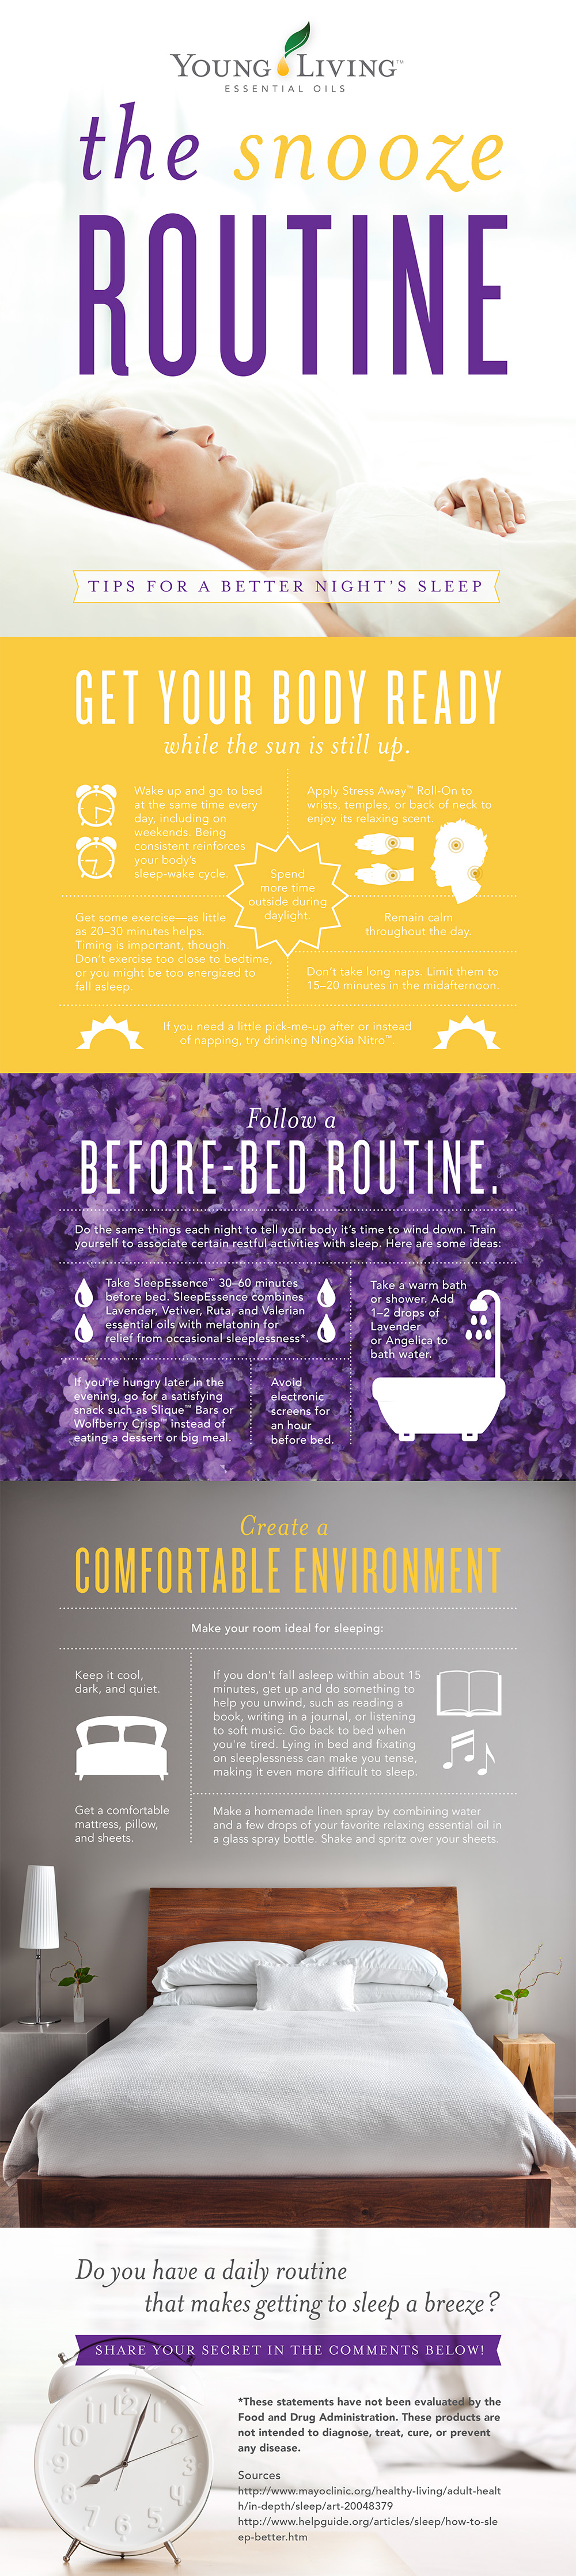 Sleep, Young Living, Essential Oils, Lavender, Stress Away Roll On, SleepEssence, Vetiver, Ruta, Valerian, Angelica, Slique Bar, Wolfberry Crisp,